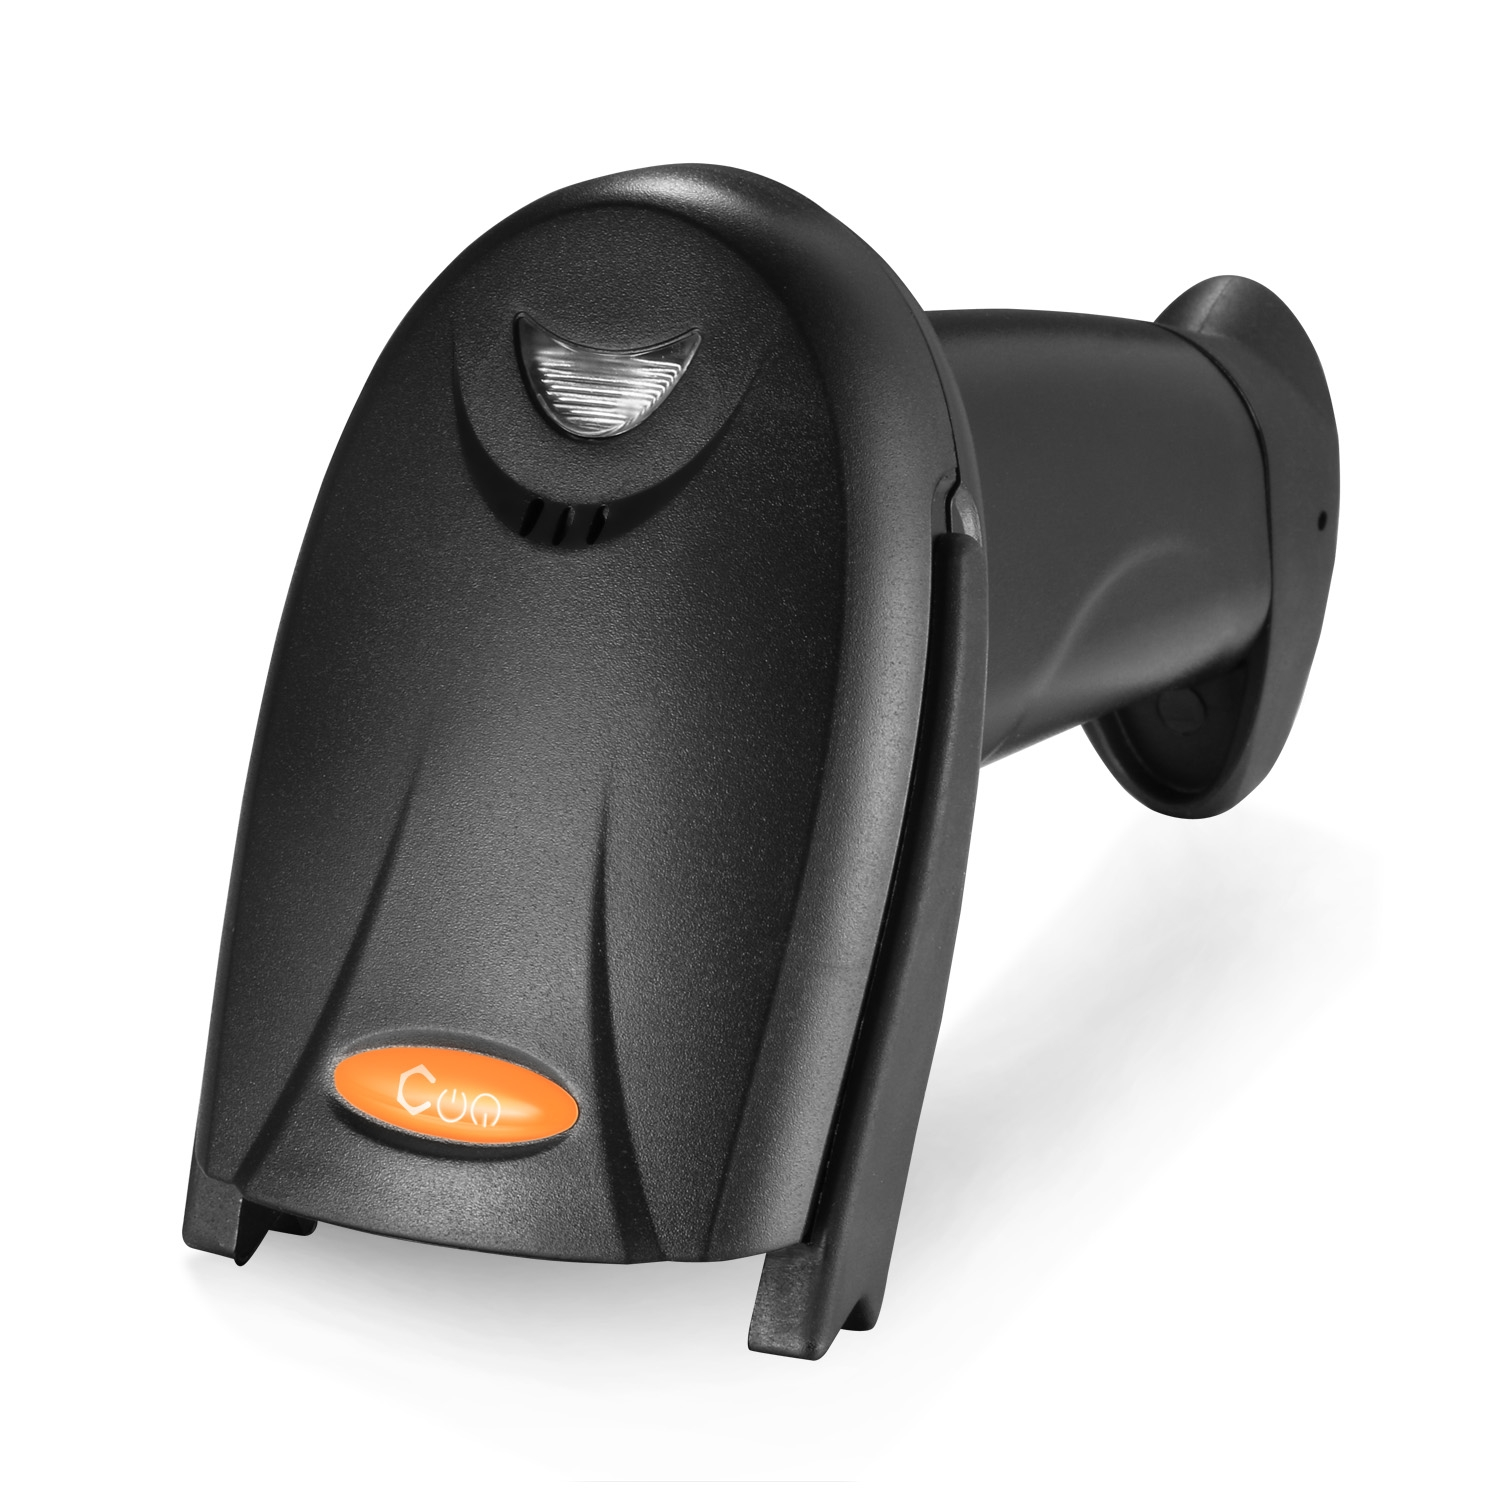 Barcode Scanner Wireless Automatic Laser Barcode Scanner Reader Black ROJE